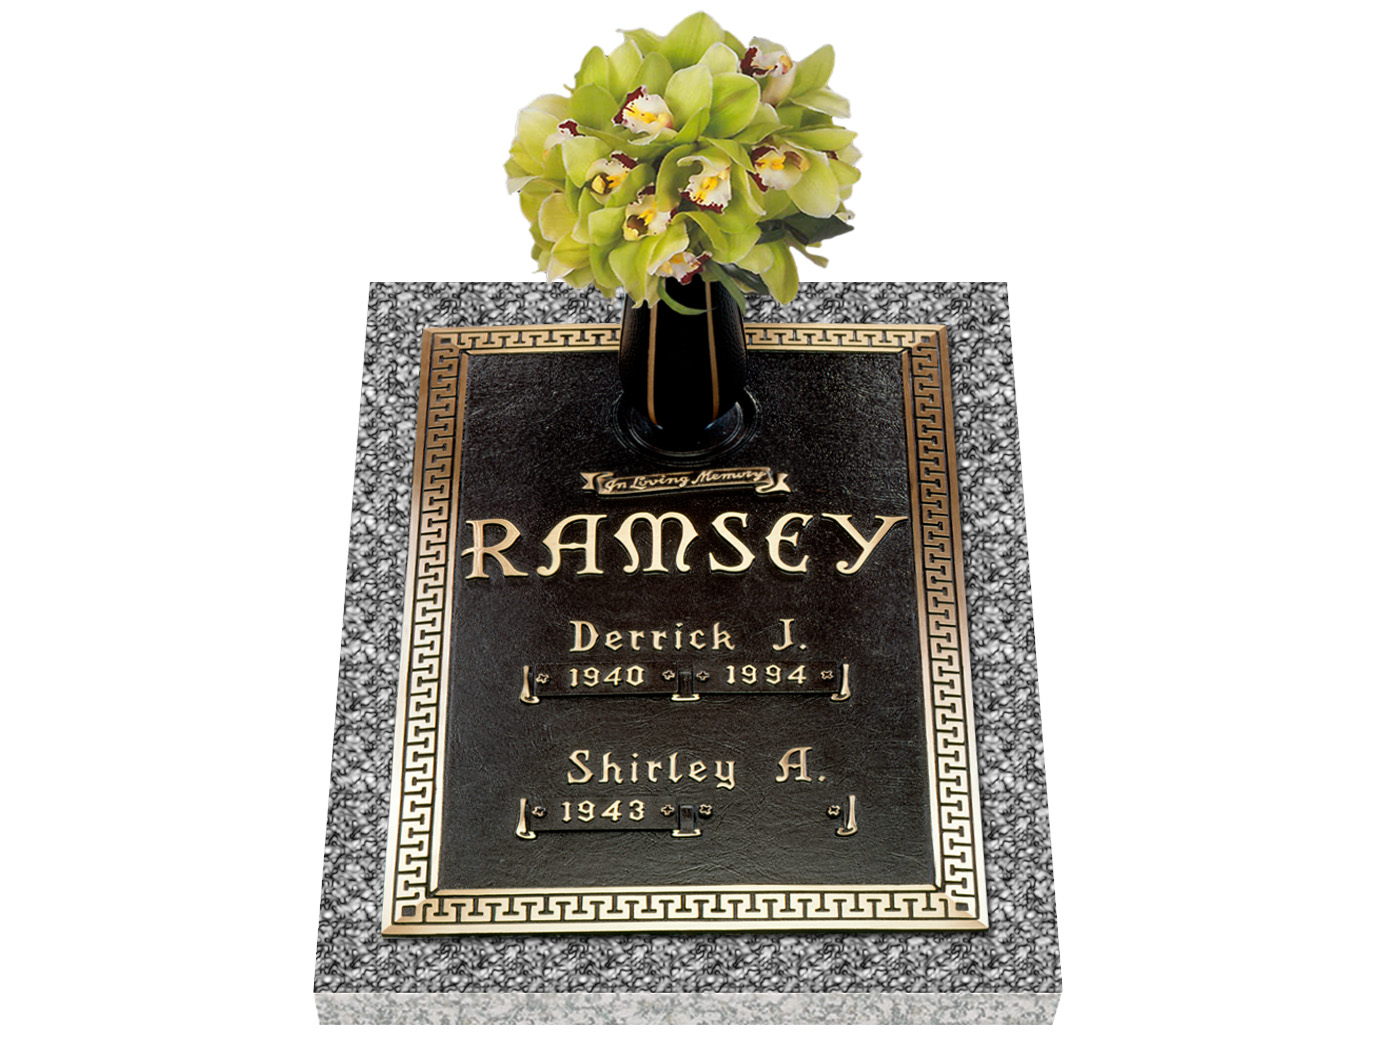 Companion bronze grave markers lovemarkers classic double interment with vase reviewsmspy